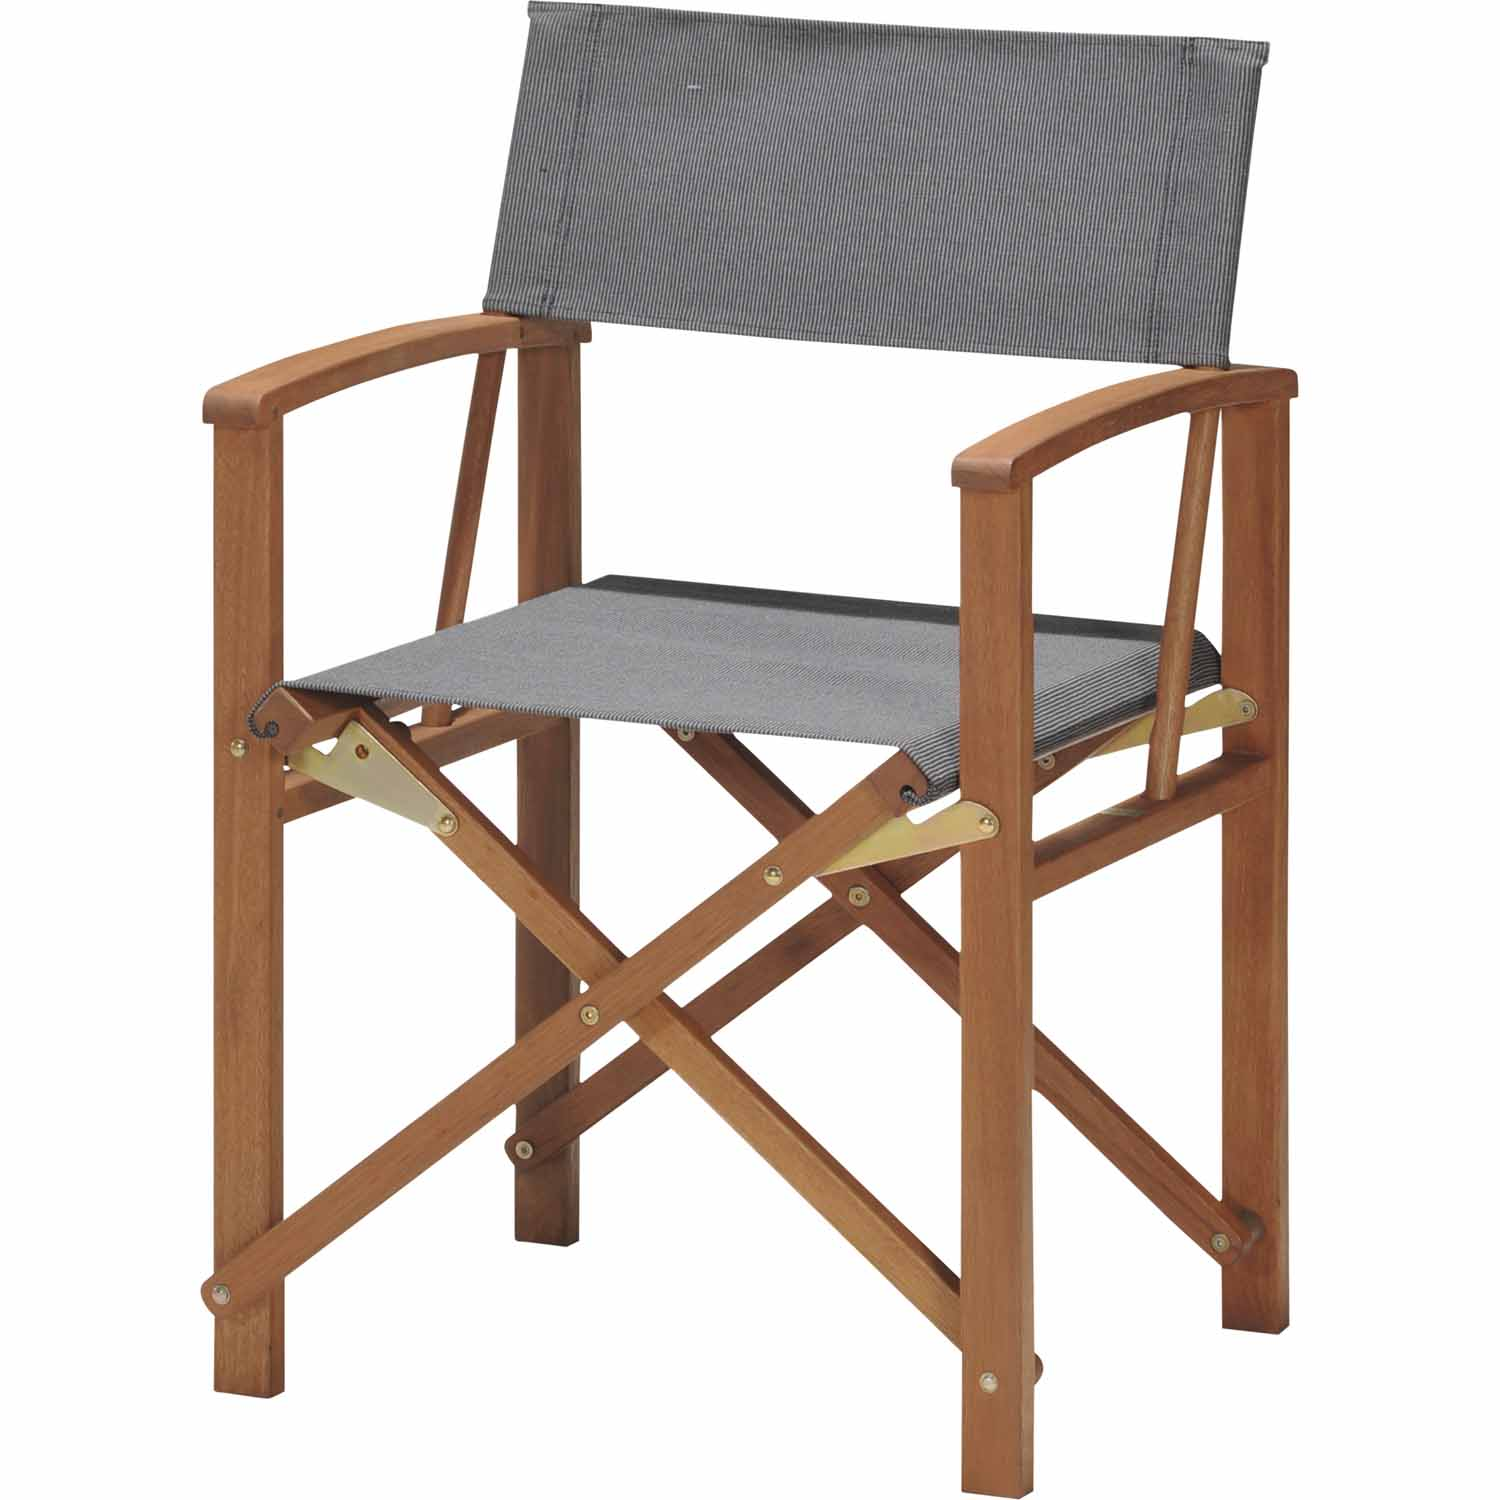 hanging chair mitre 10 tall office chairs for standing desks nouveau directors outdoor hardwood